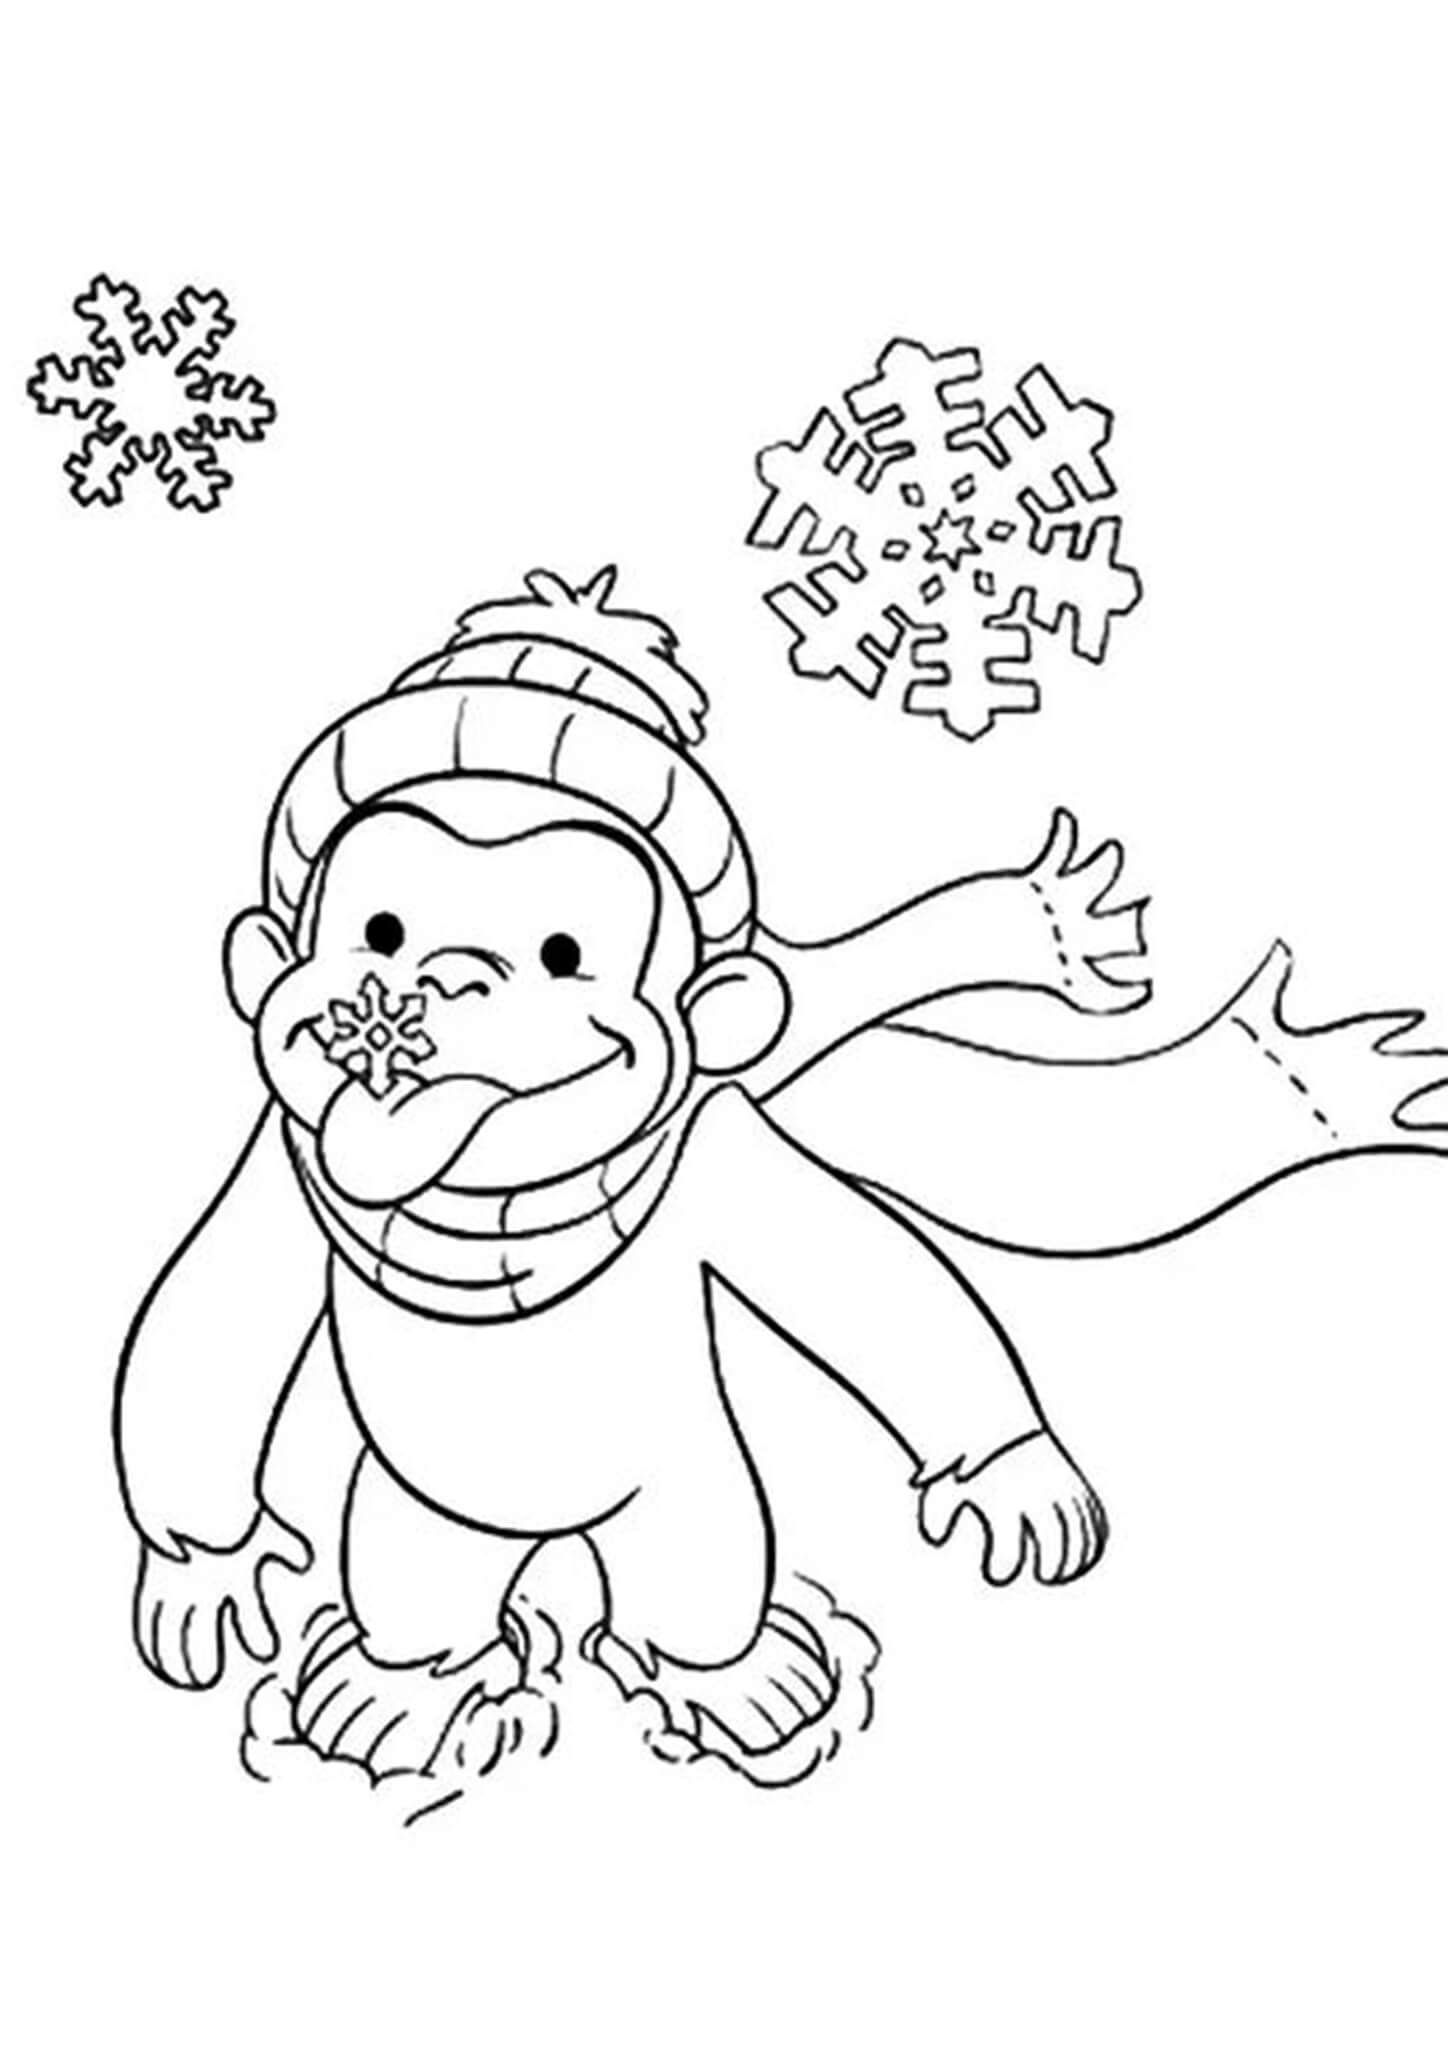 Free Easy To Print Curious George Coloring Pages In 2021 Curious George Coloring Pages Coloring Books Coloring Pages